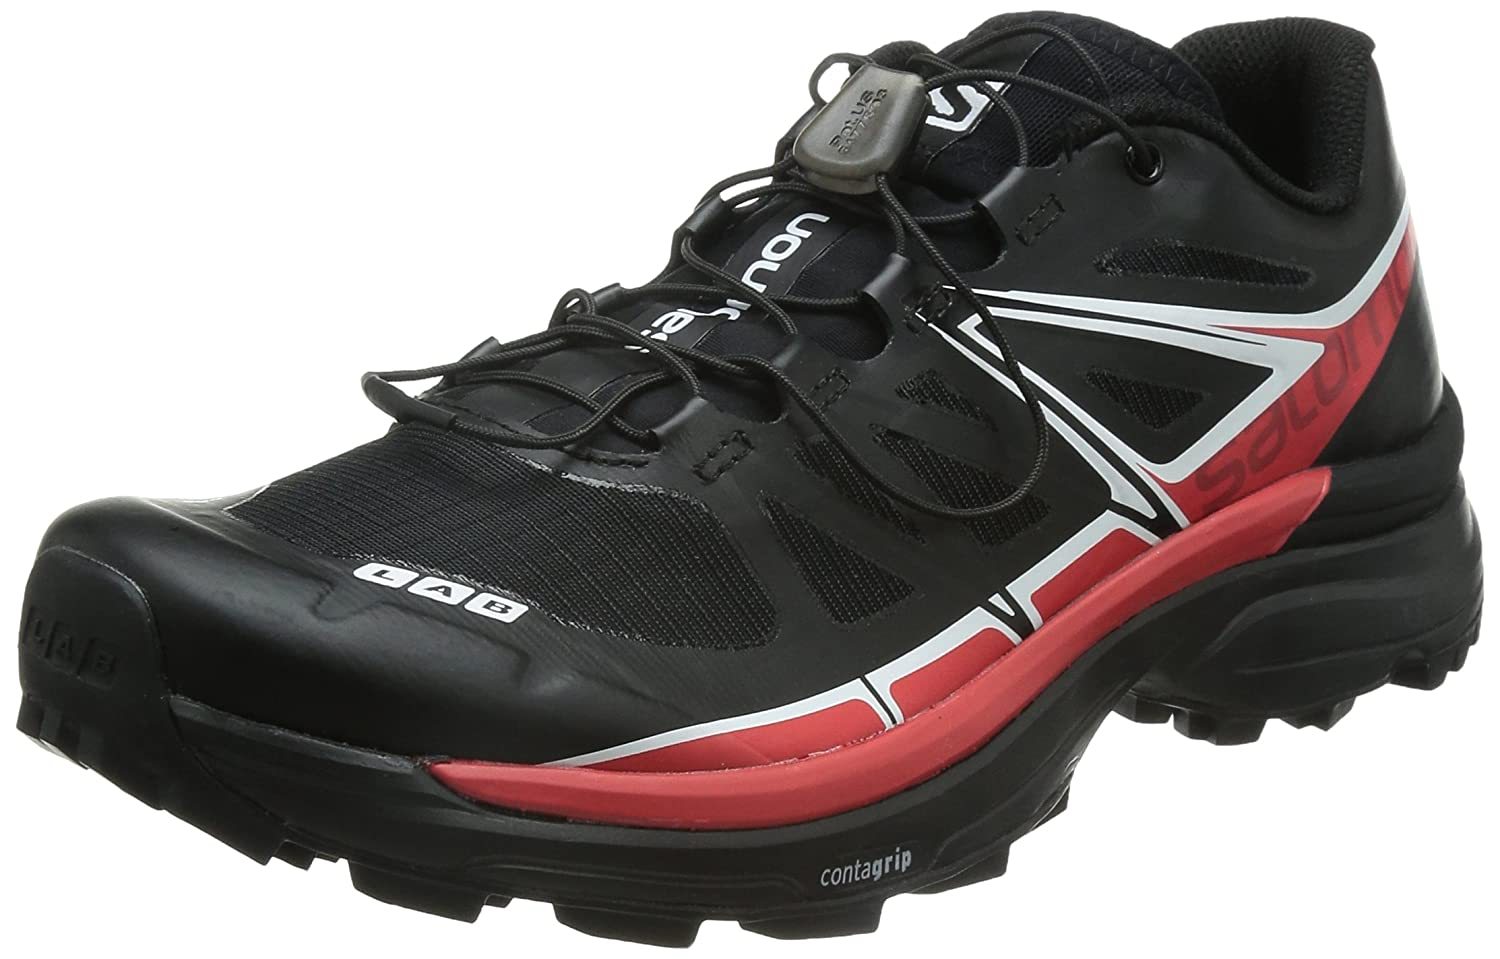 [サロモン] SALOMON トレイルランニングシューズ S-LAB WINGS SG B00PRU528I 27.5 cm BLACK/RACING RED/White